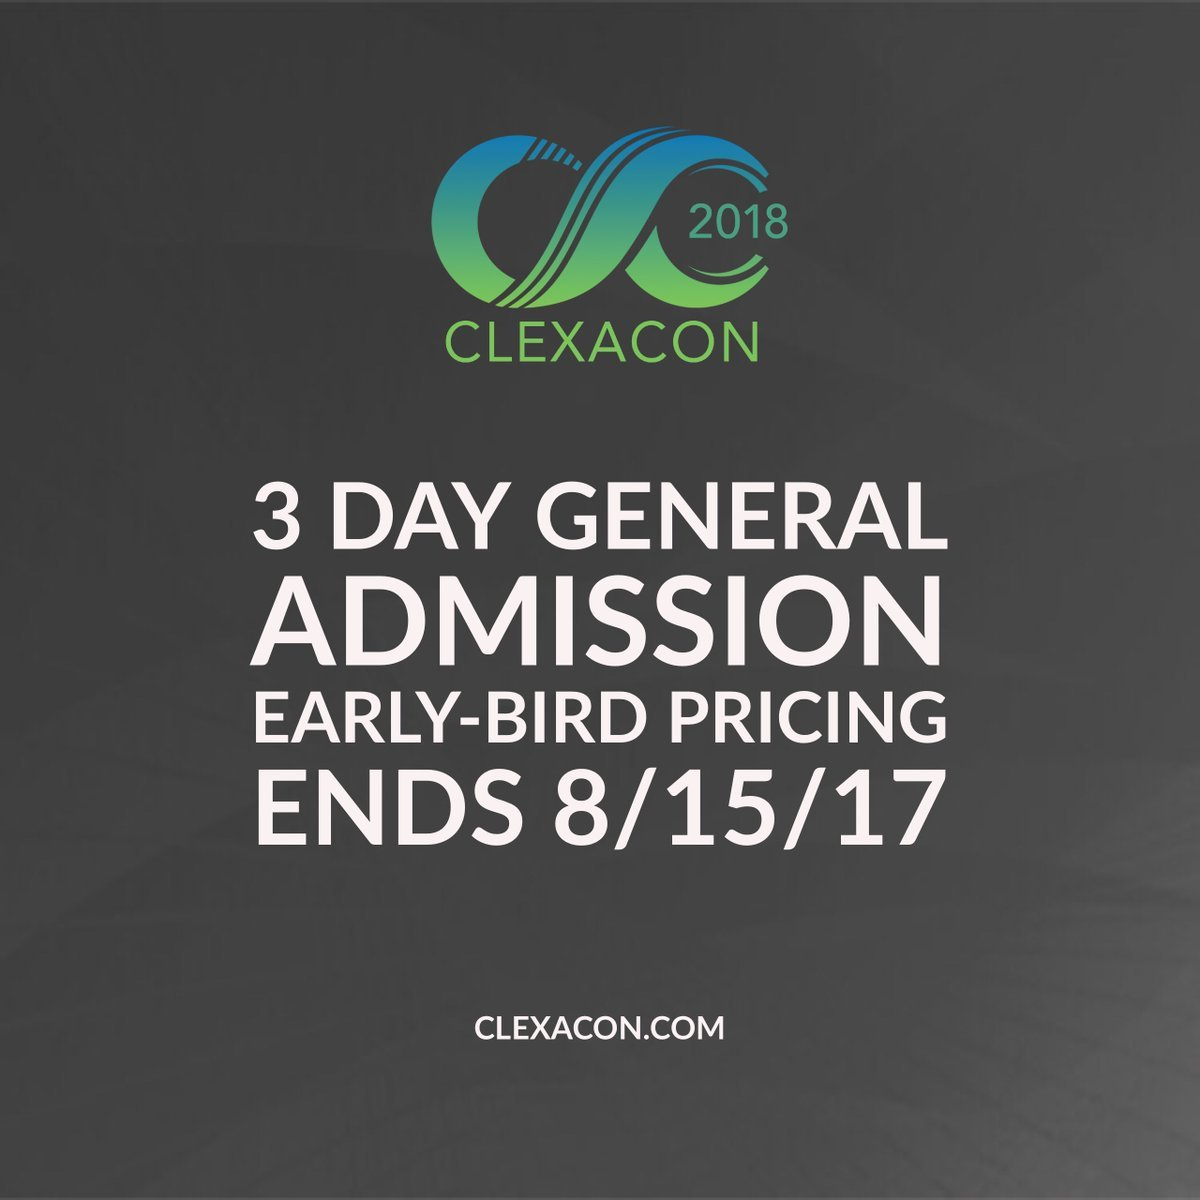 Clexacon on twitter vip passes typically sell out within 30mins today is the last day to purchase standard 3 day passes at early bird pricing that means prices go up tomorrow m4hsunfo